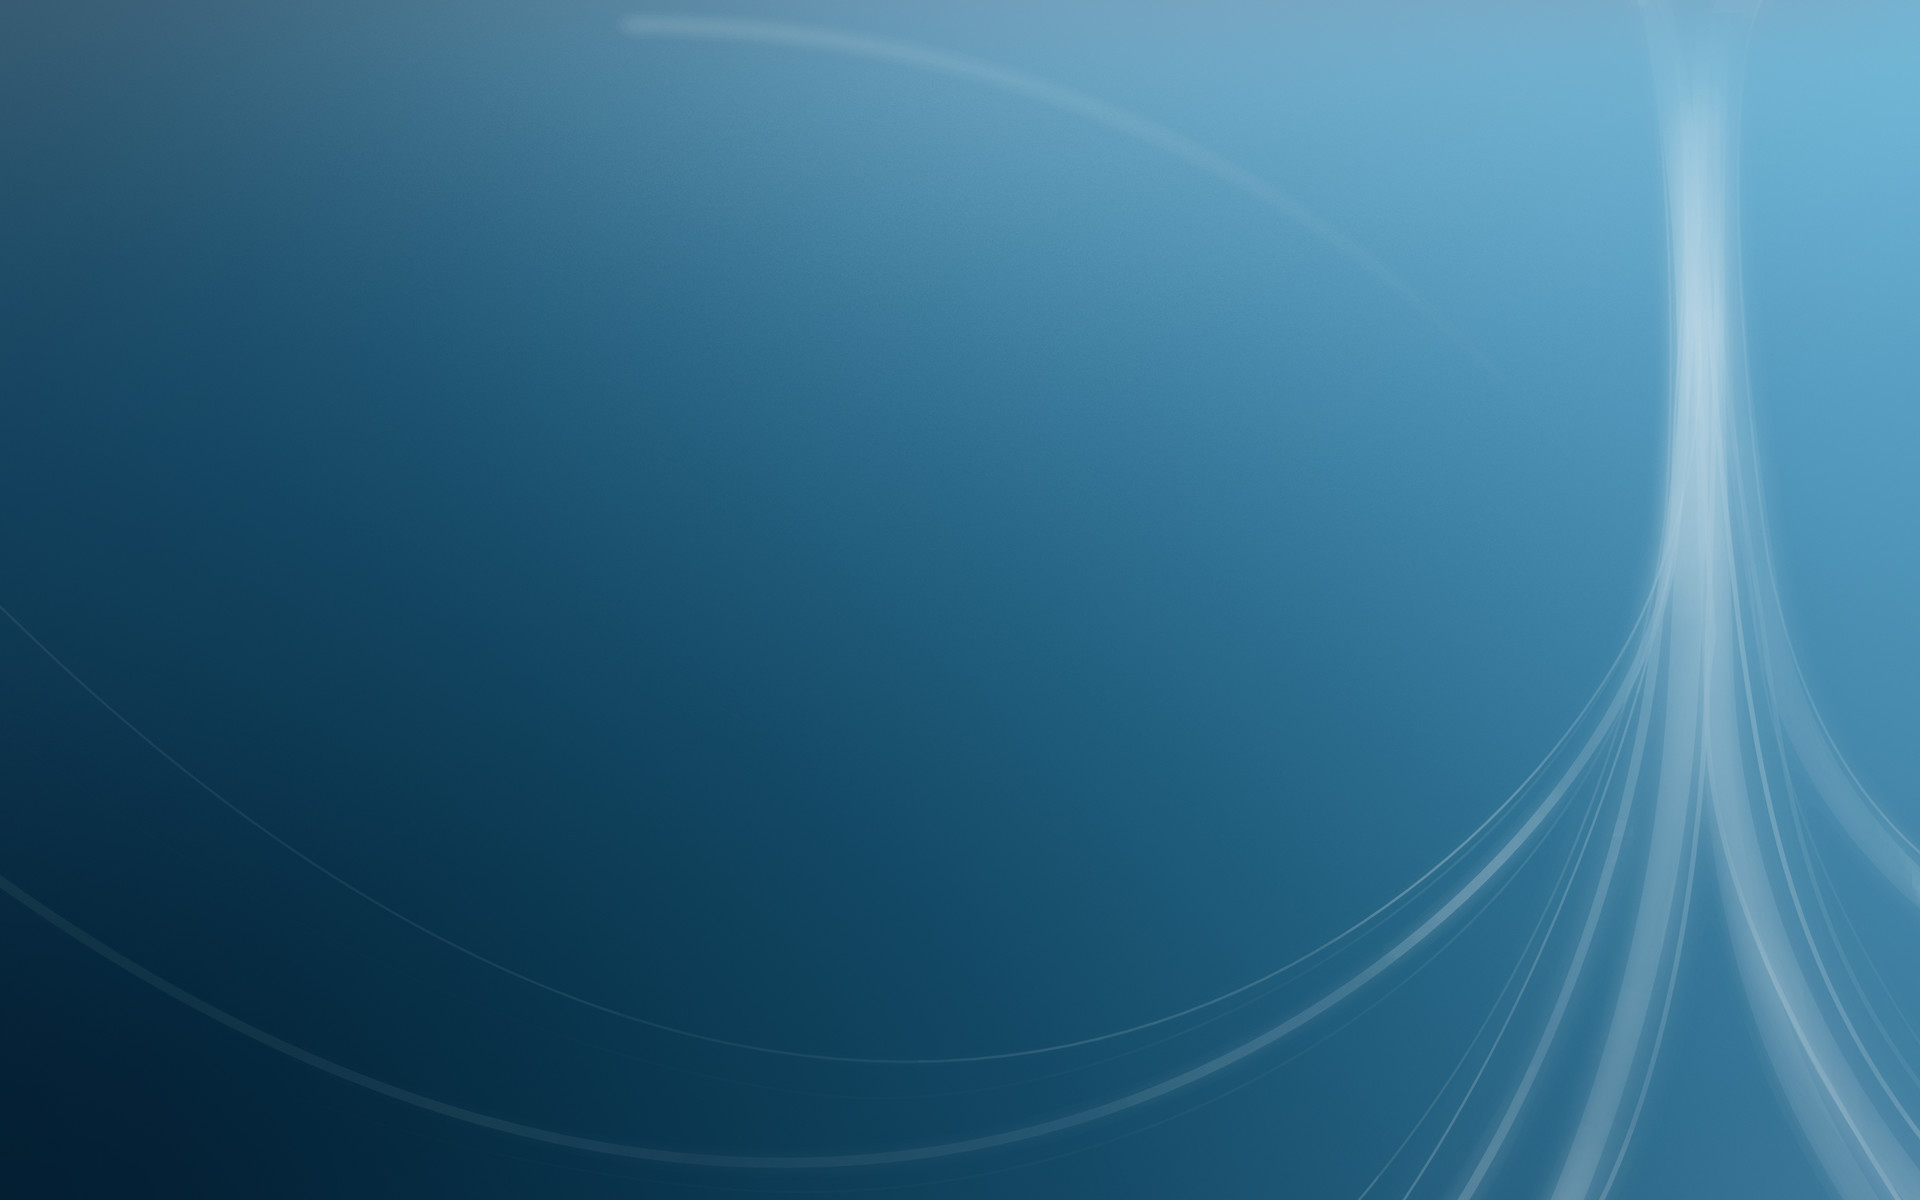 F8-wallpaper-day.png